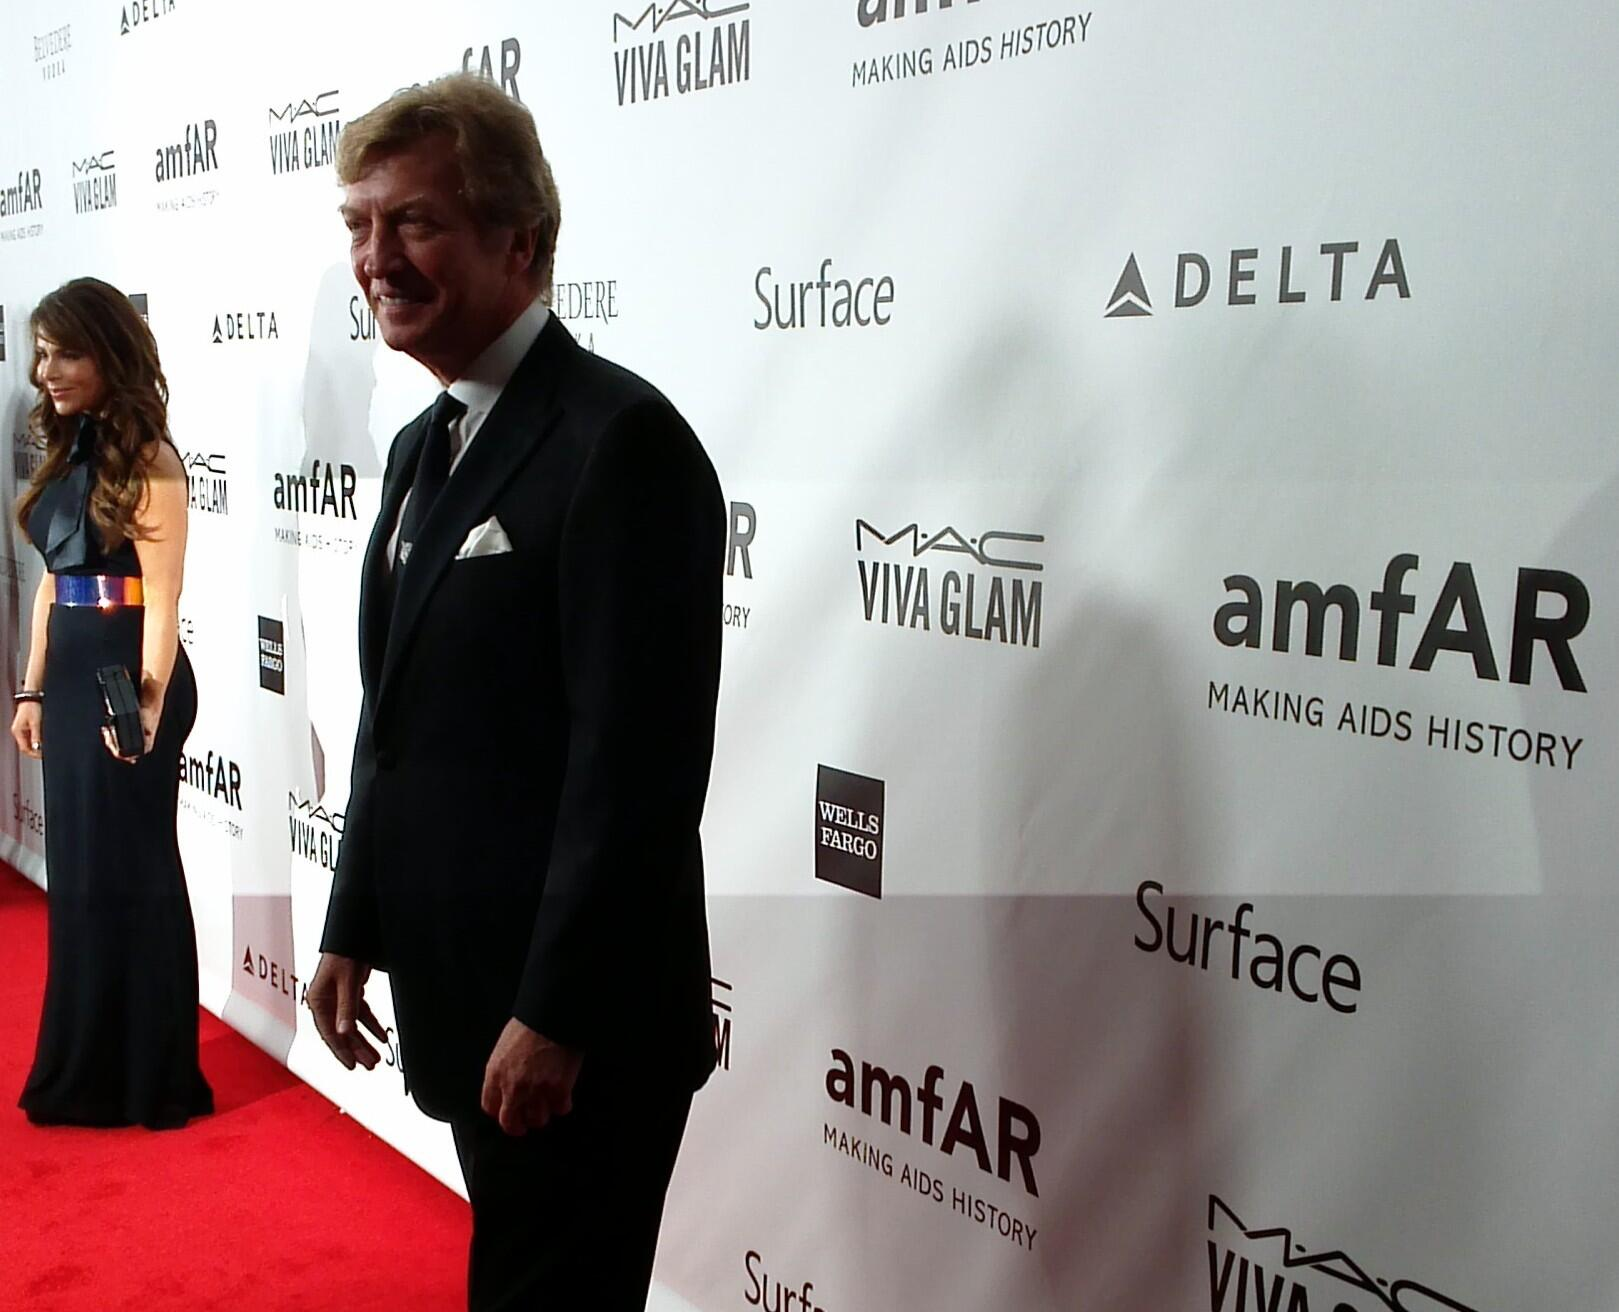 RT @amfAR: Friends @paulaabdul @dizzyfeet hit the #RedCarpet together to support #amfARInspiration in LA http://t.co/0DXveLqBtG